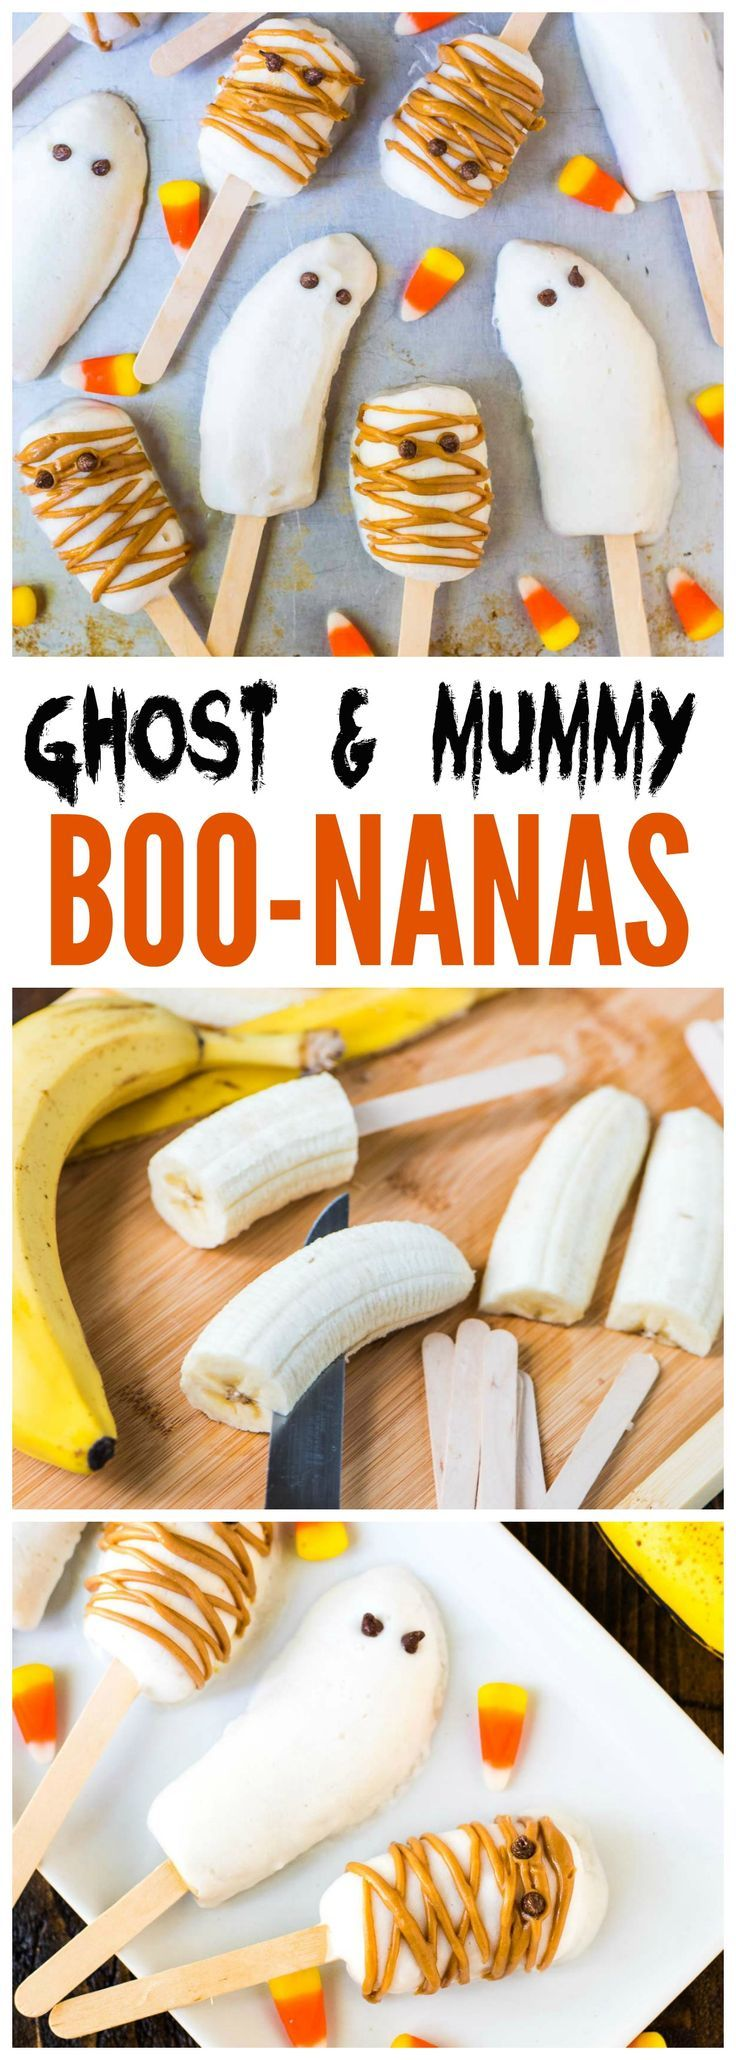 Easy BOO-NANA Banana Popsicle Ghosts and Mummies. SO CUTE! Great healthy Halloween snacks for kids and a fun Halloween activity. Recipe at wellplated.com | @wellplated